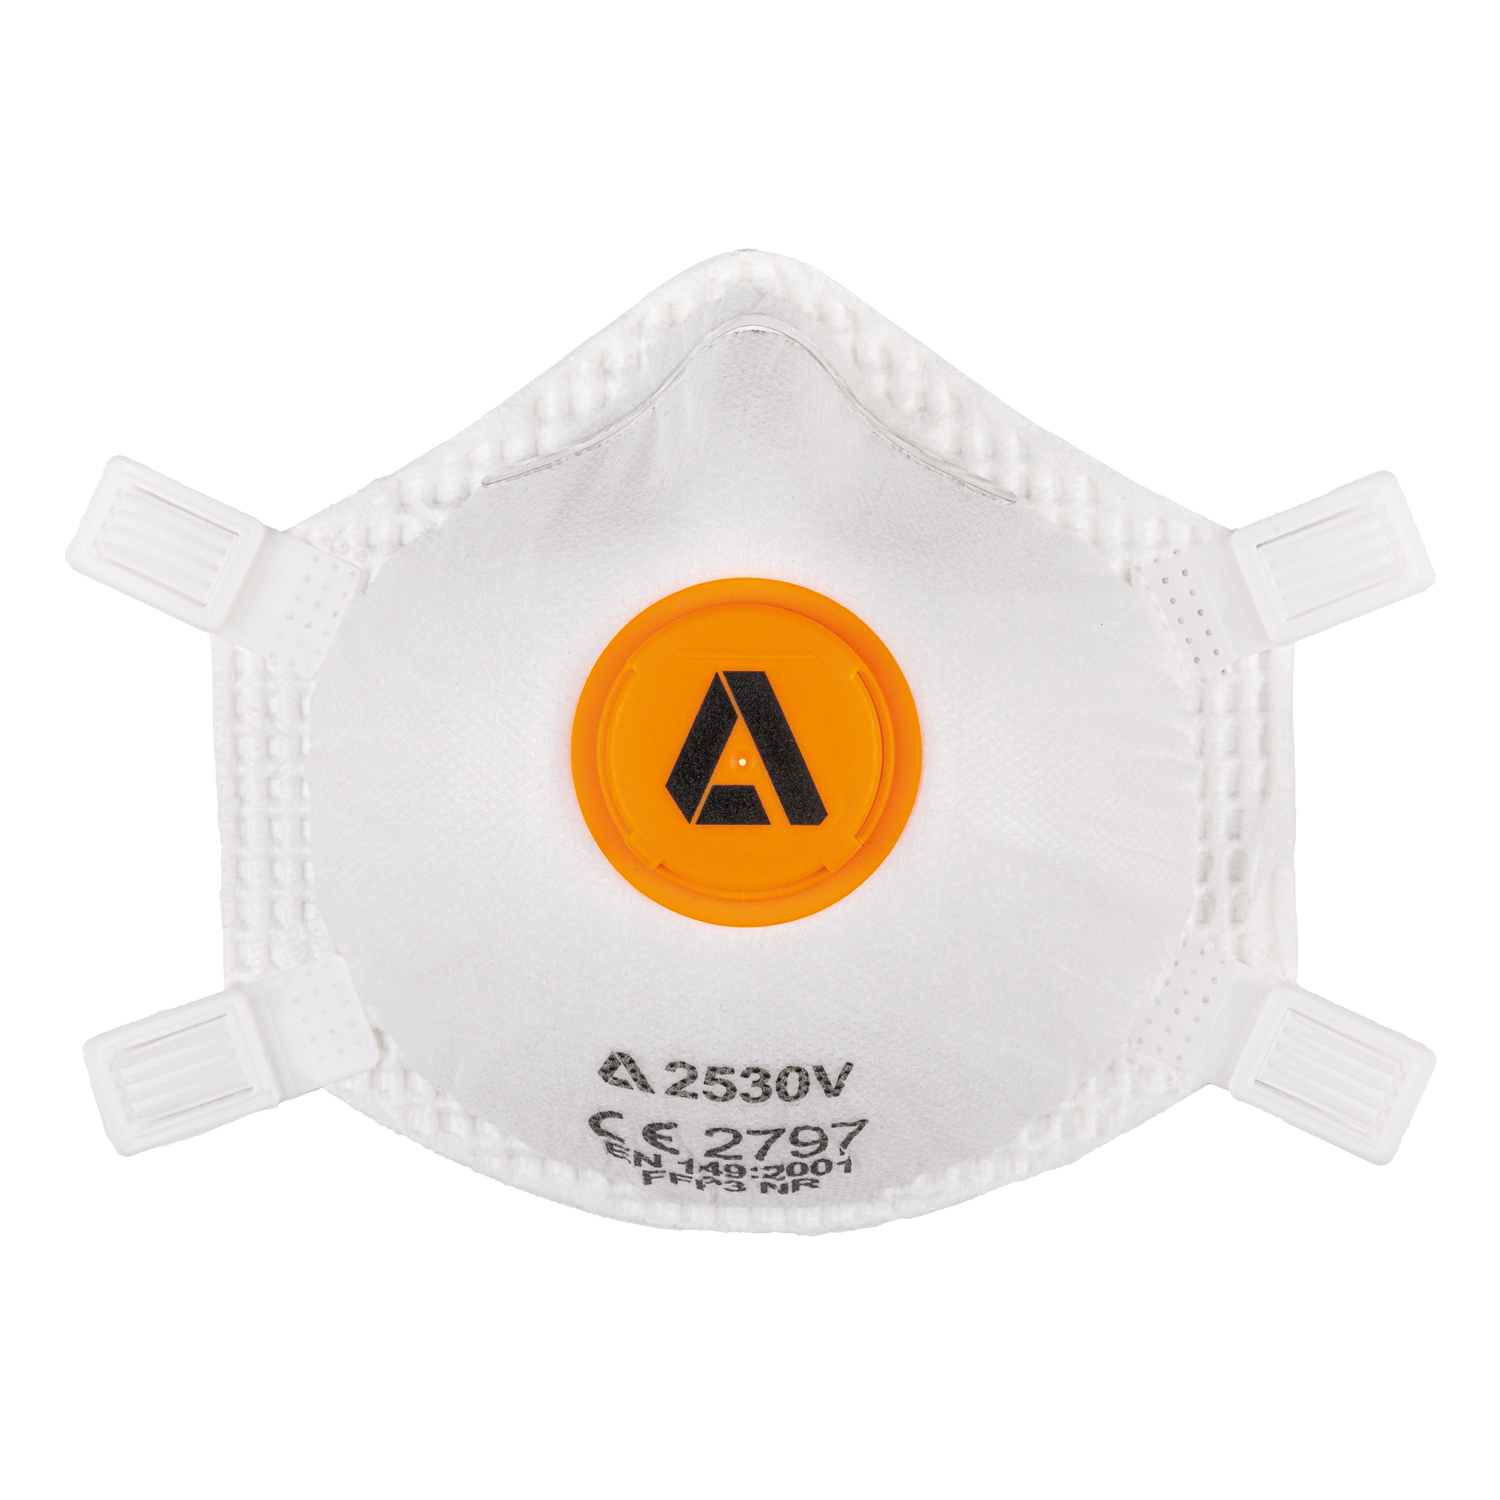 The Alpha Solway 2530V FFP3 Dust Masks